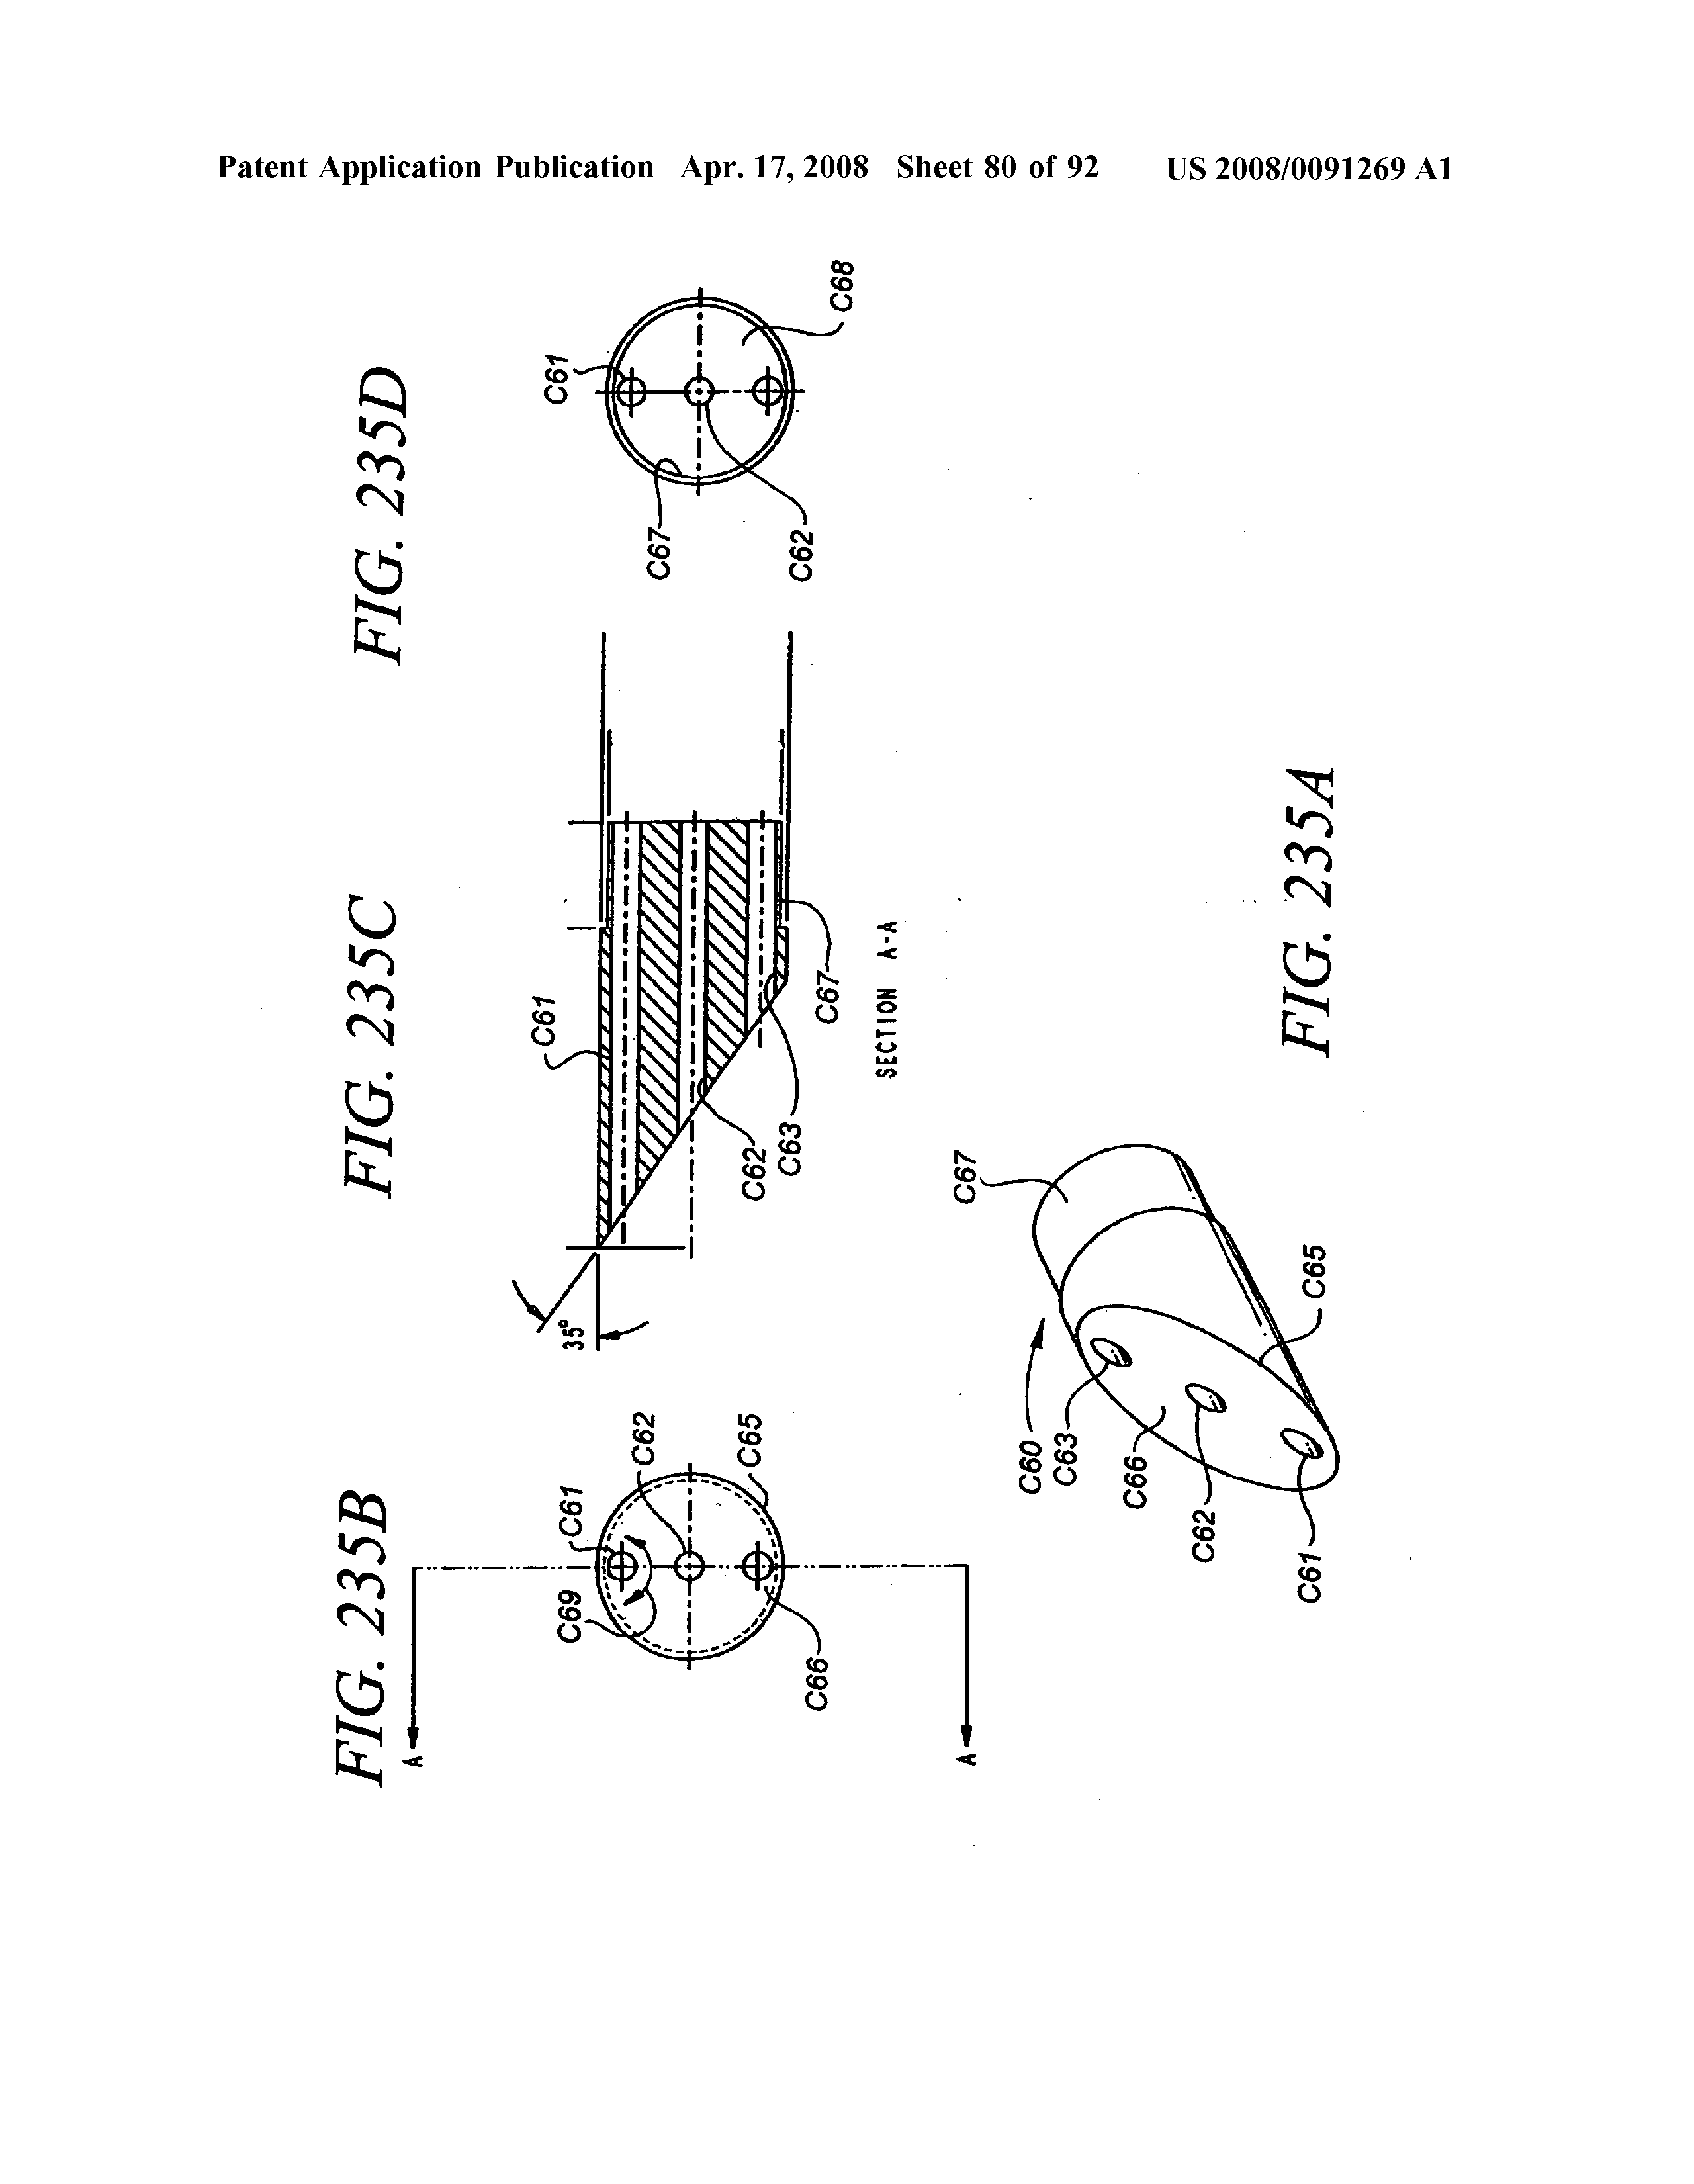 Us 2008 0091269 A1 Minimally Invasive Apparatus To Manipulate And C61 Wiring Diagram Page 81 136